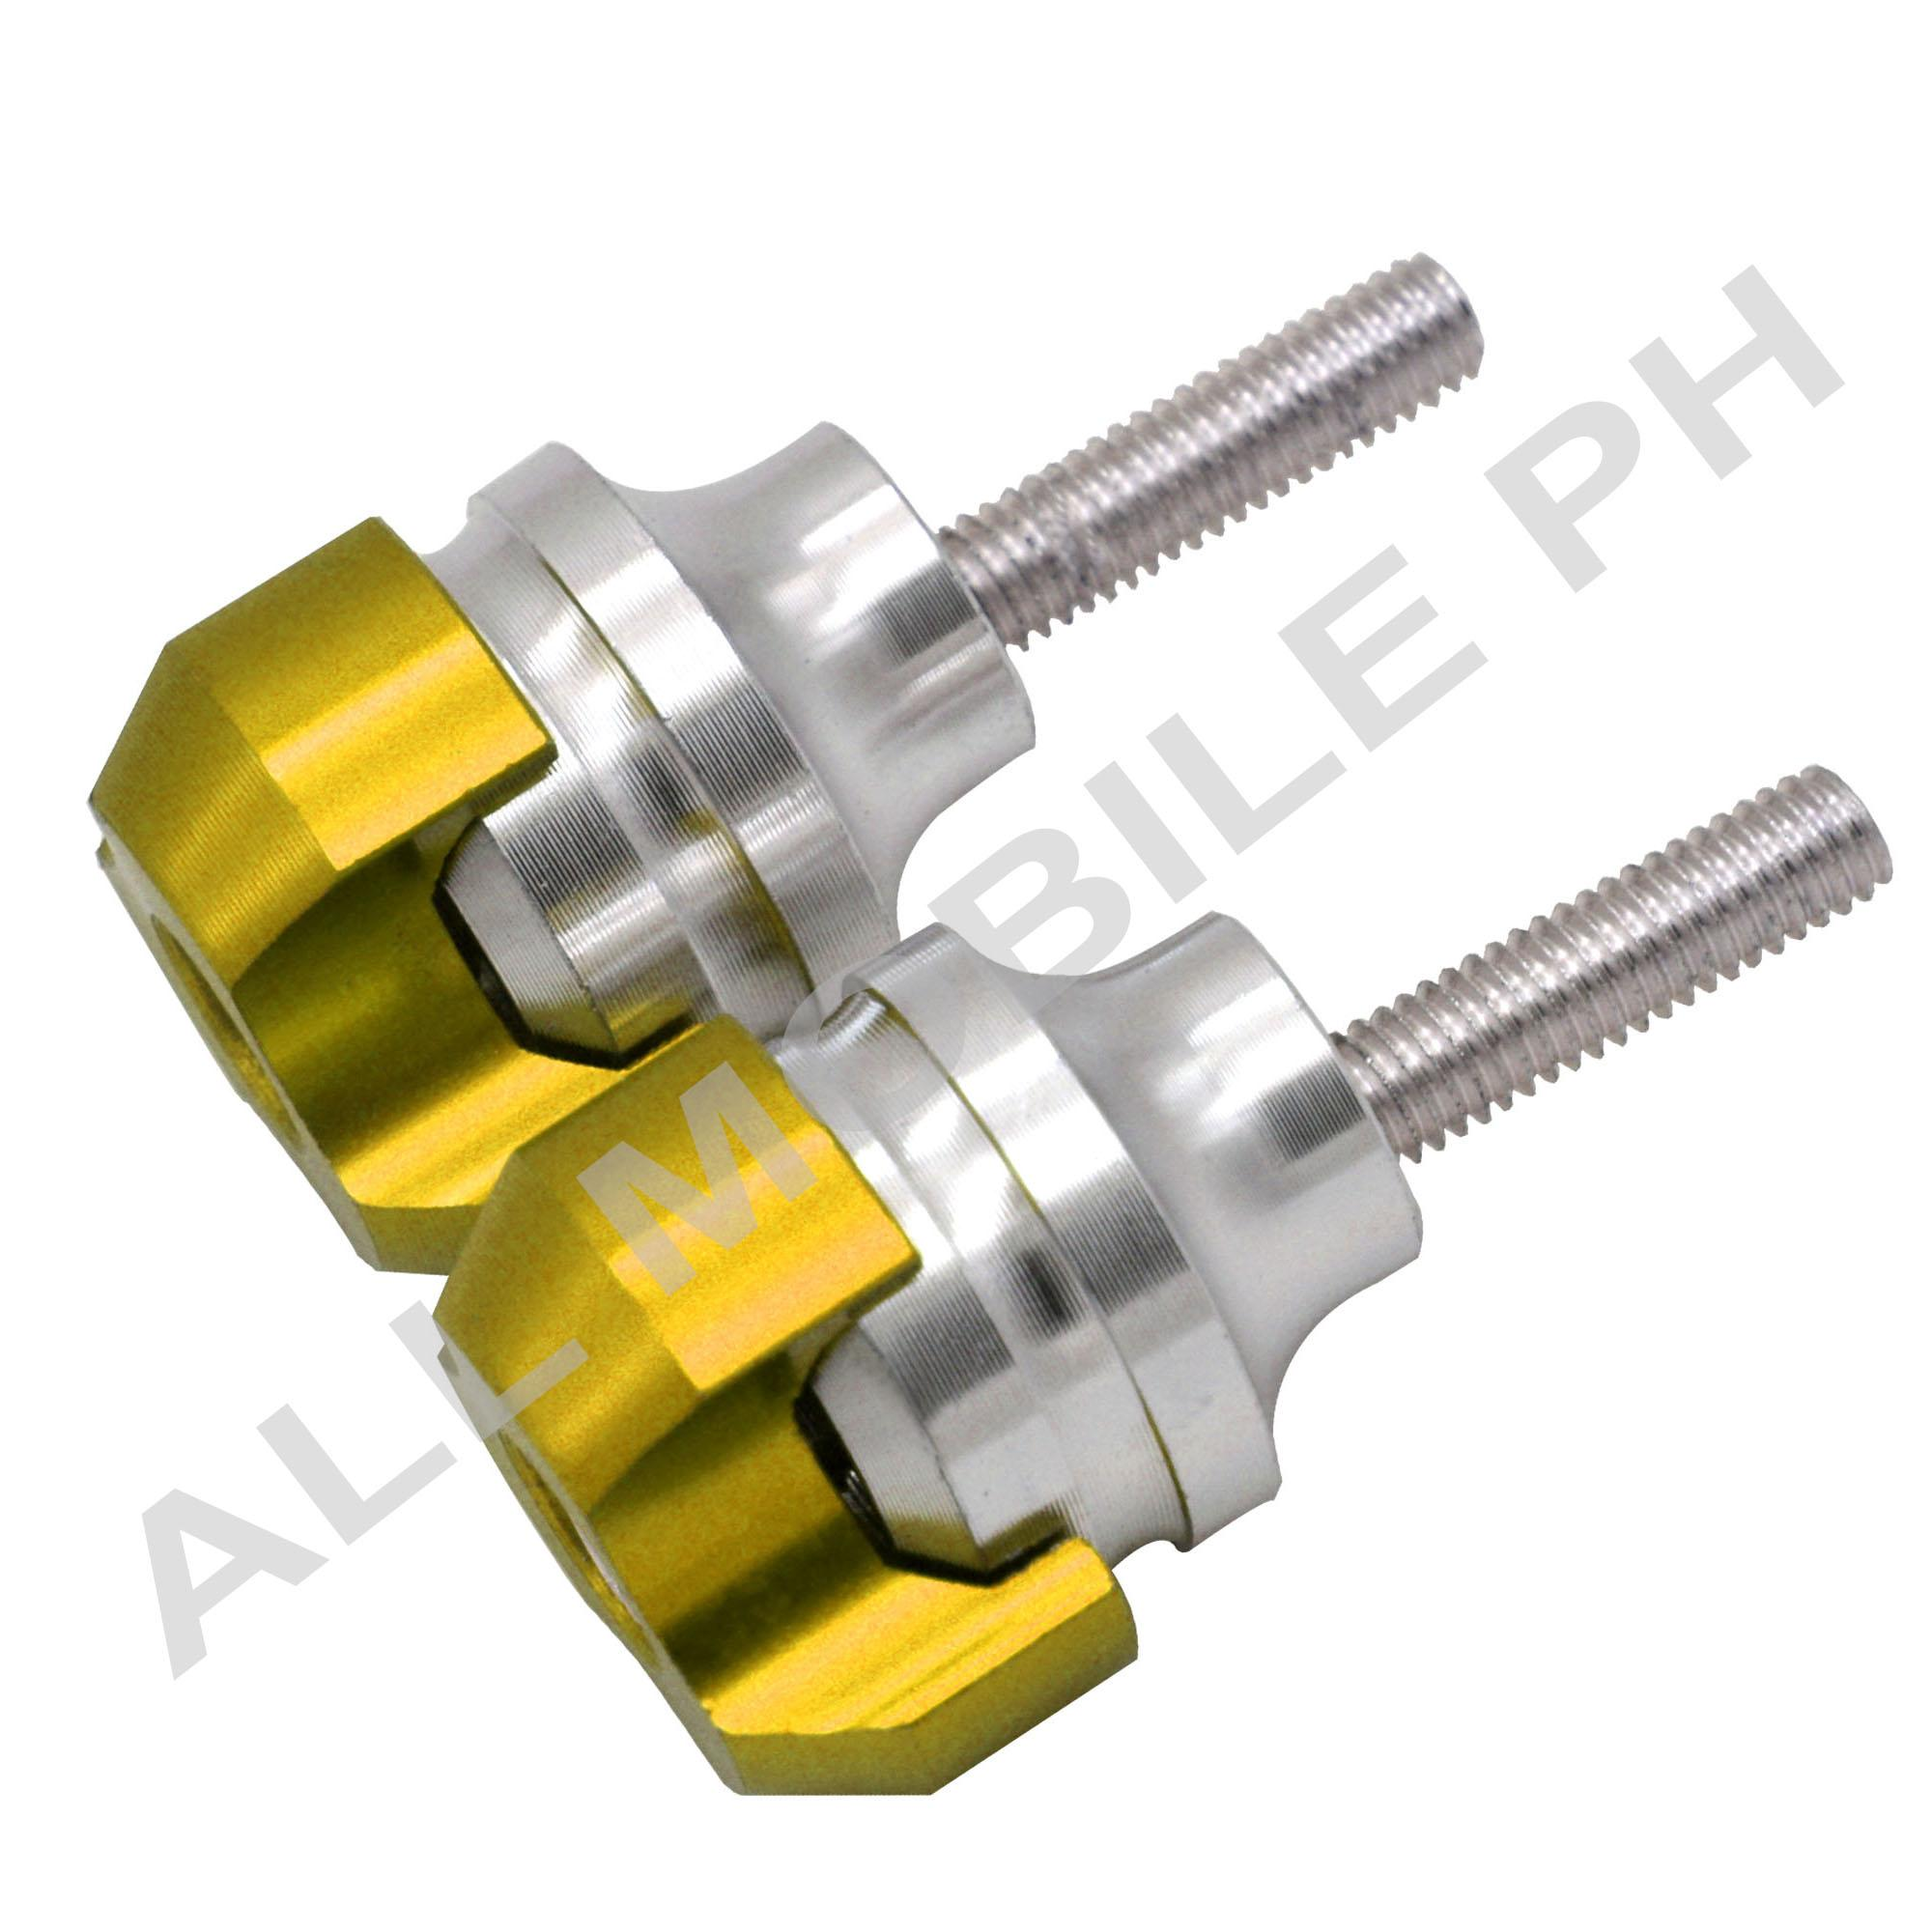 Msm 6484 Bar End Alloy , Absorb Shock When Motor When Falls (yellow) By All Mobile Ph.